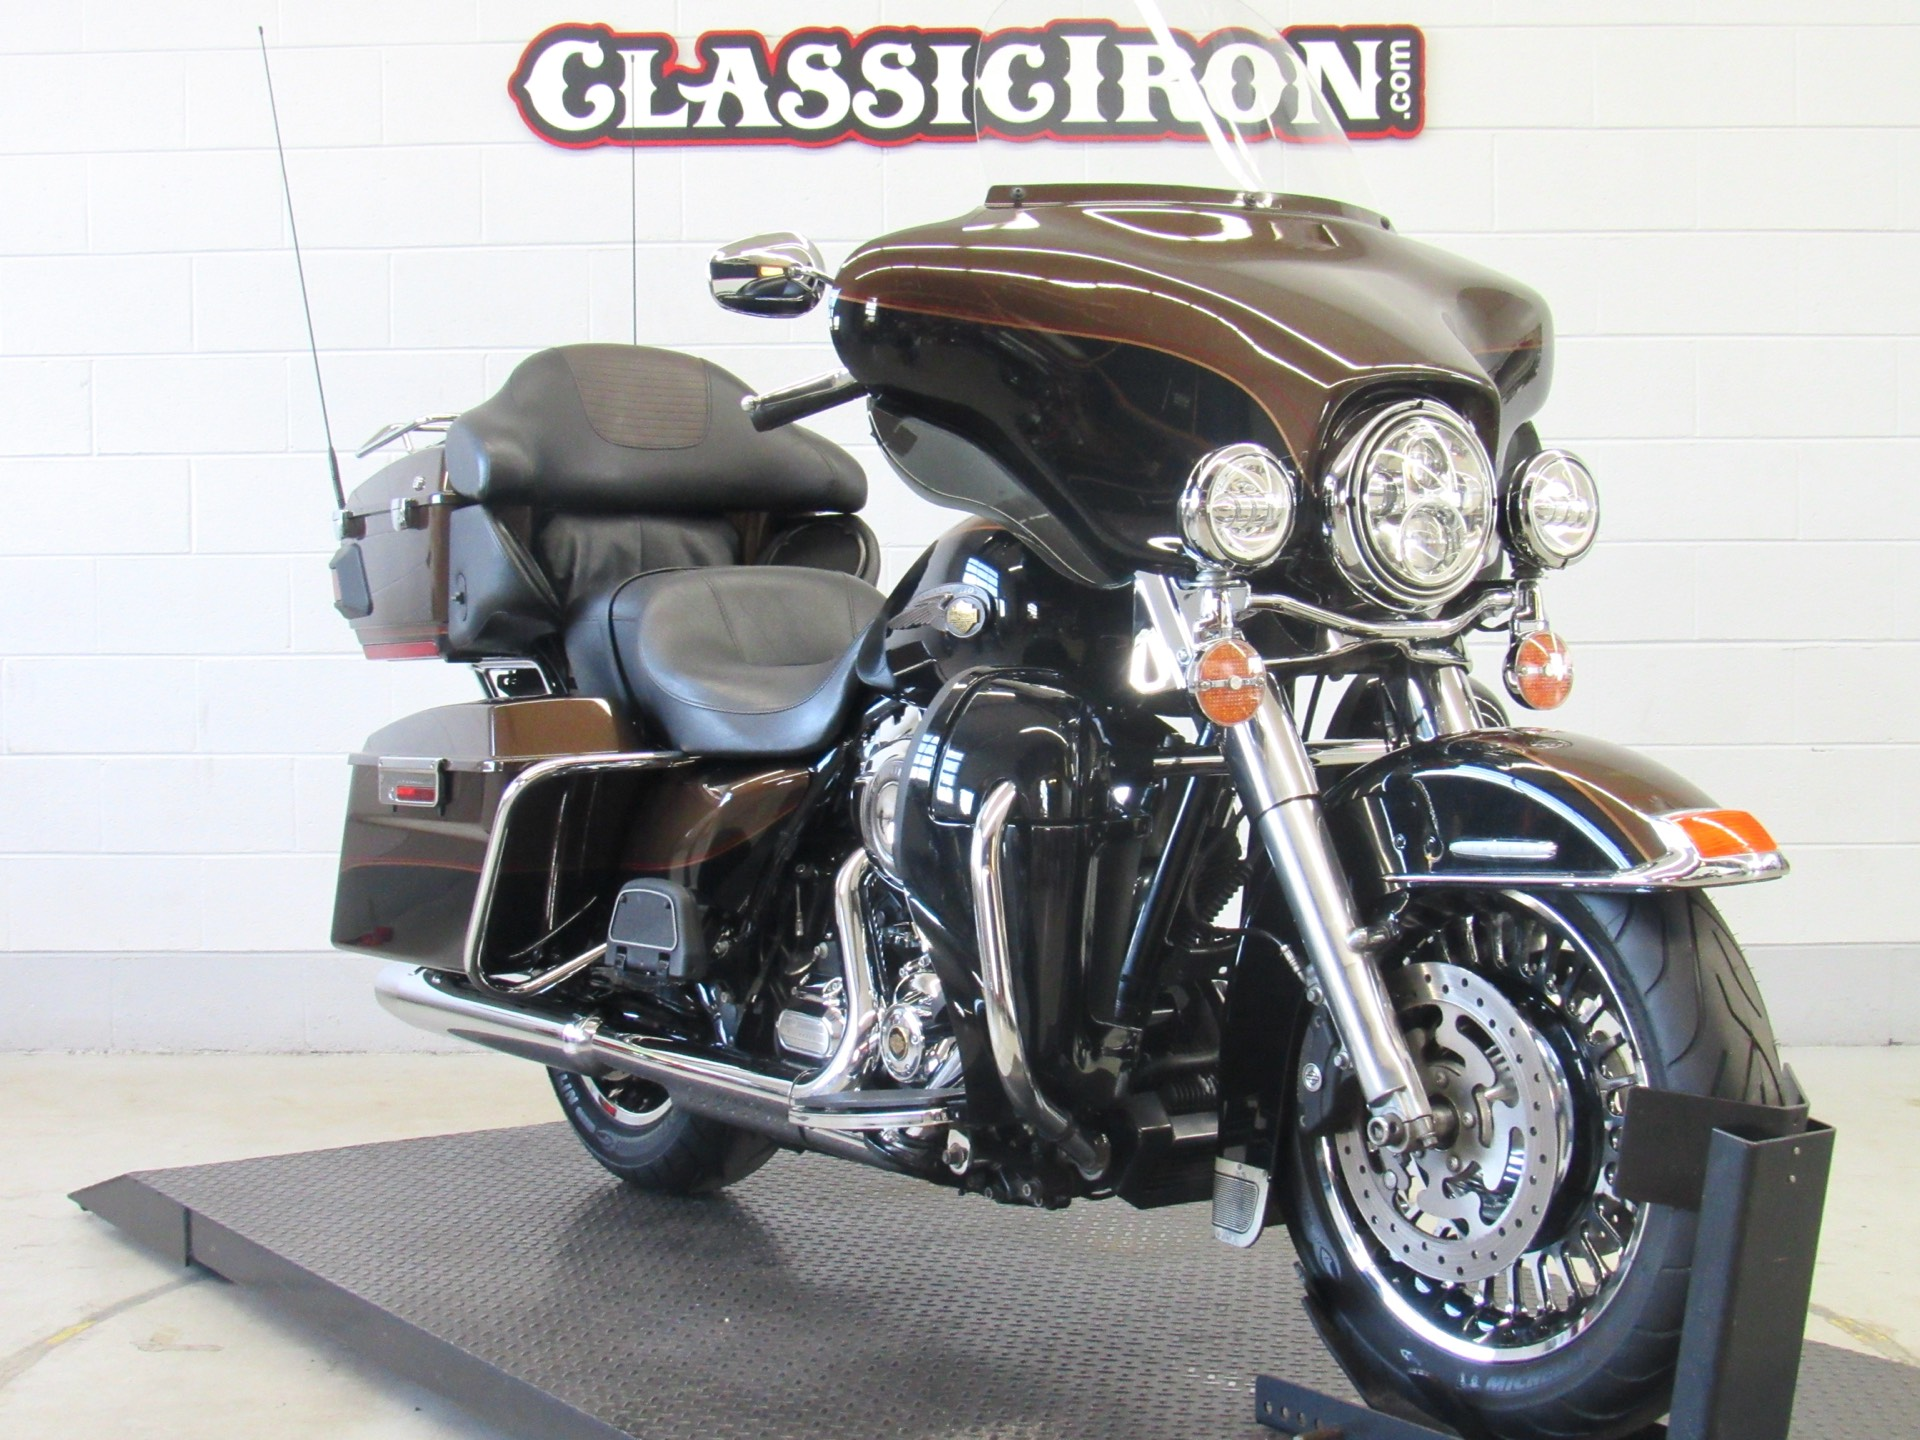 2013 Harley-Davidson Electra Glide® Ultra Limited 110th Anniversary Edition in Fredericksburg, Virginia - Photo 2